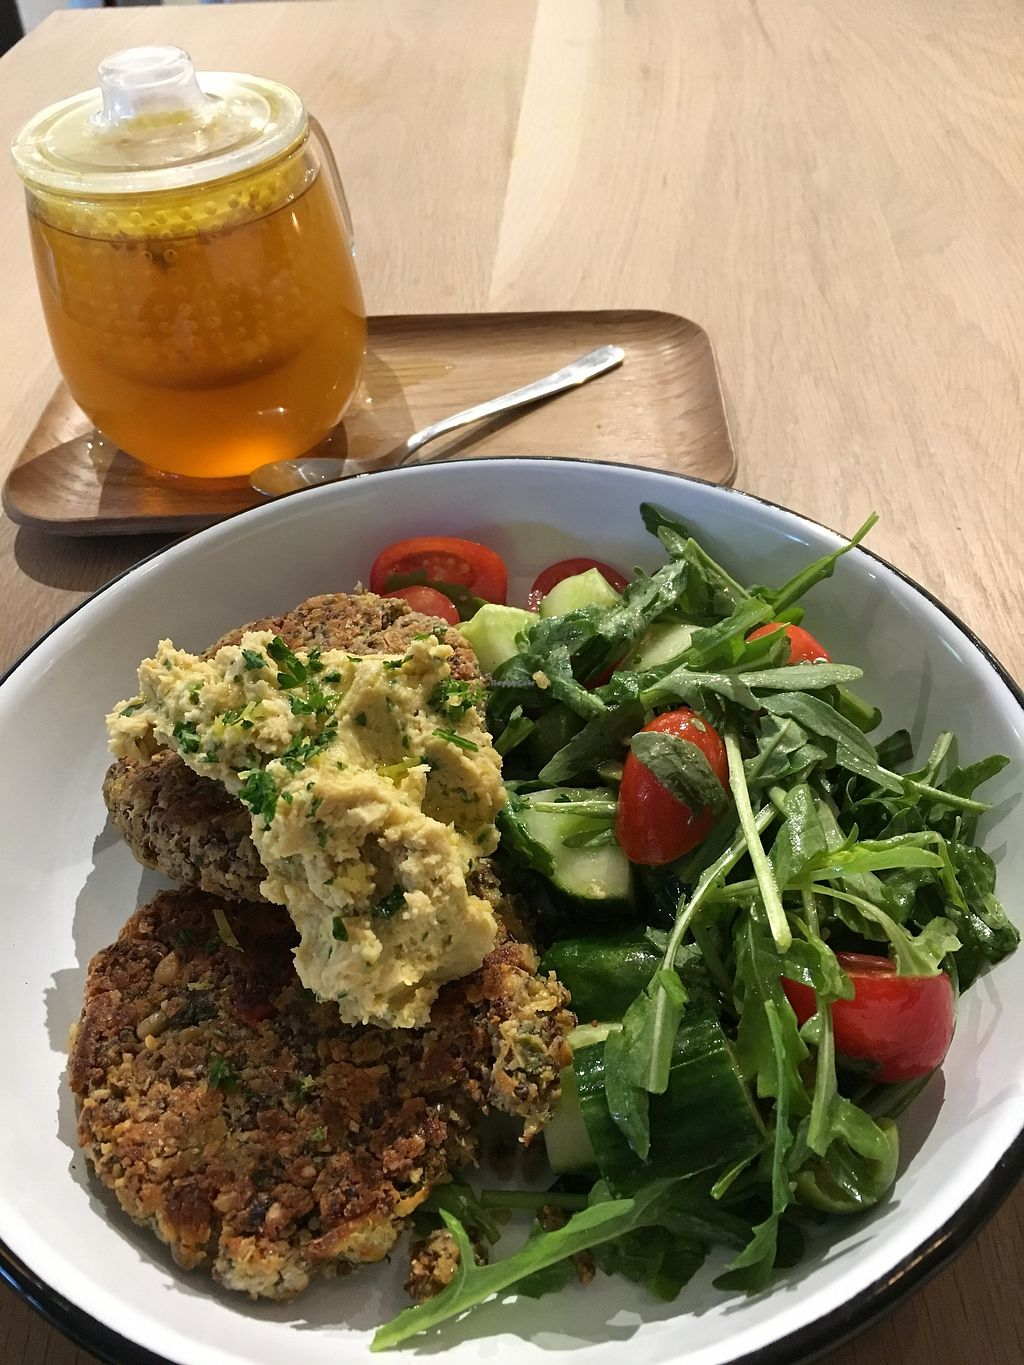 "Photo of Turf  by <a href=""/members/profile/vegan%20frog"">vegan frog</a> <br/>Quinoa bites and salad <br/> June 30, 2017  - <a href='/contact/abuse/image/88984/274996'>Report</a>"